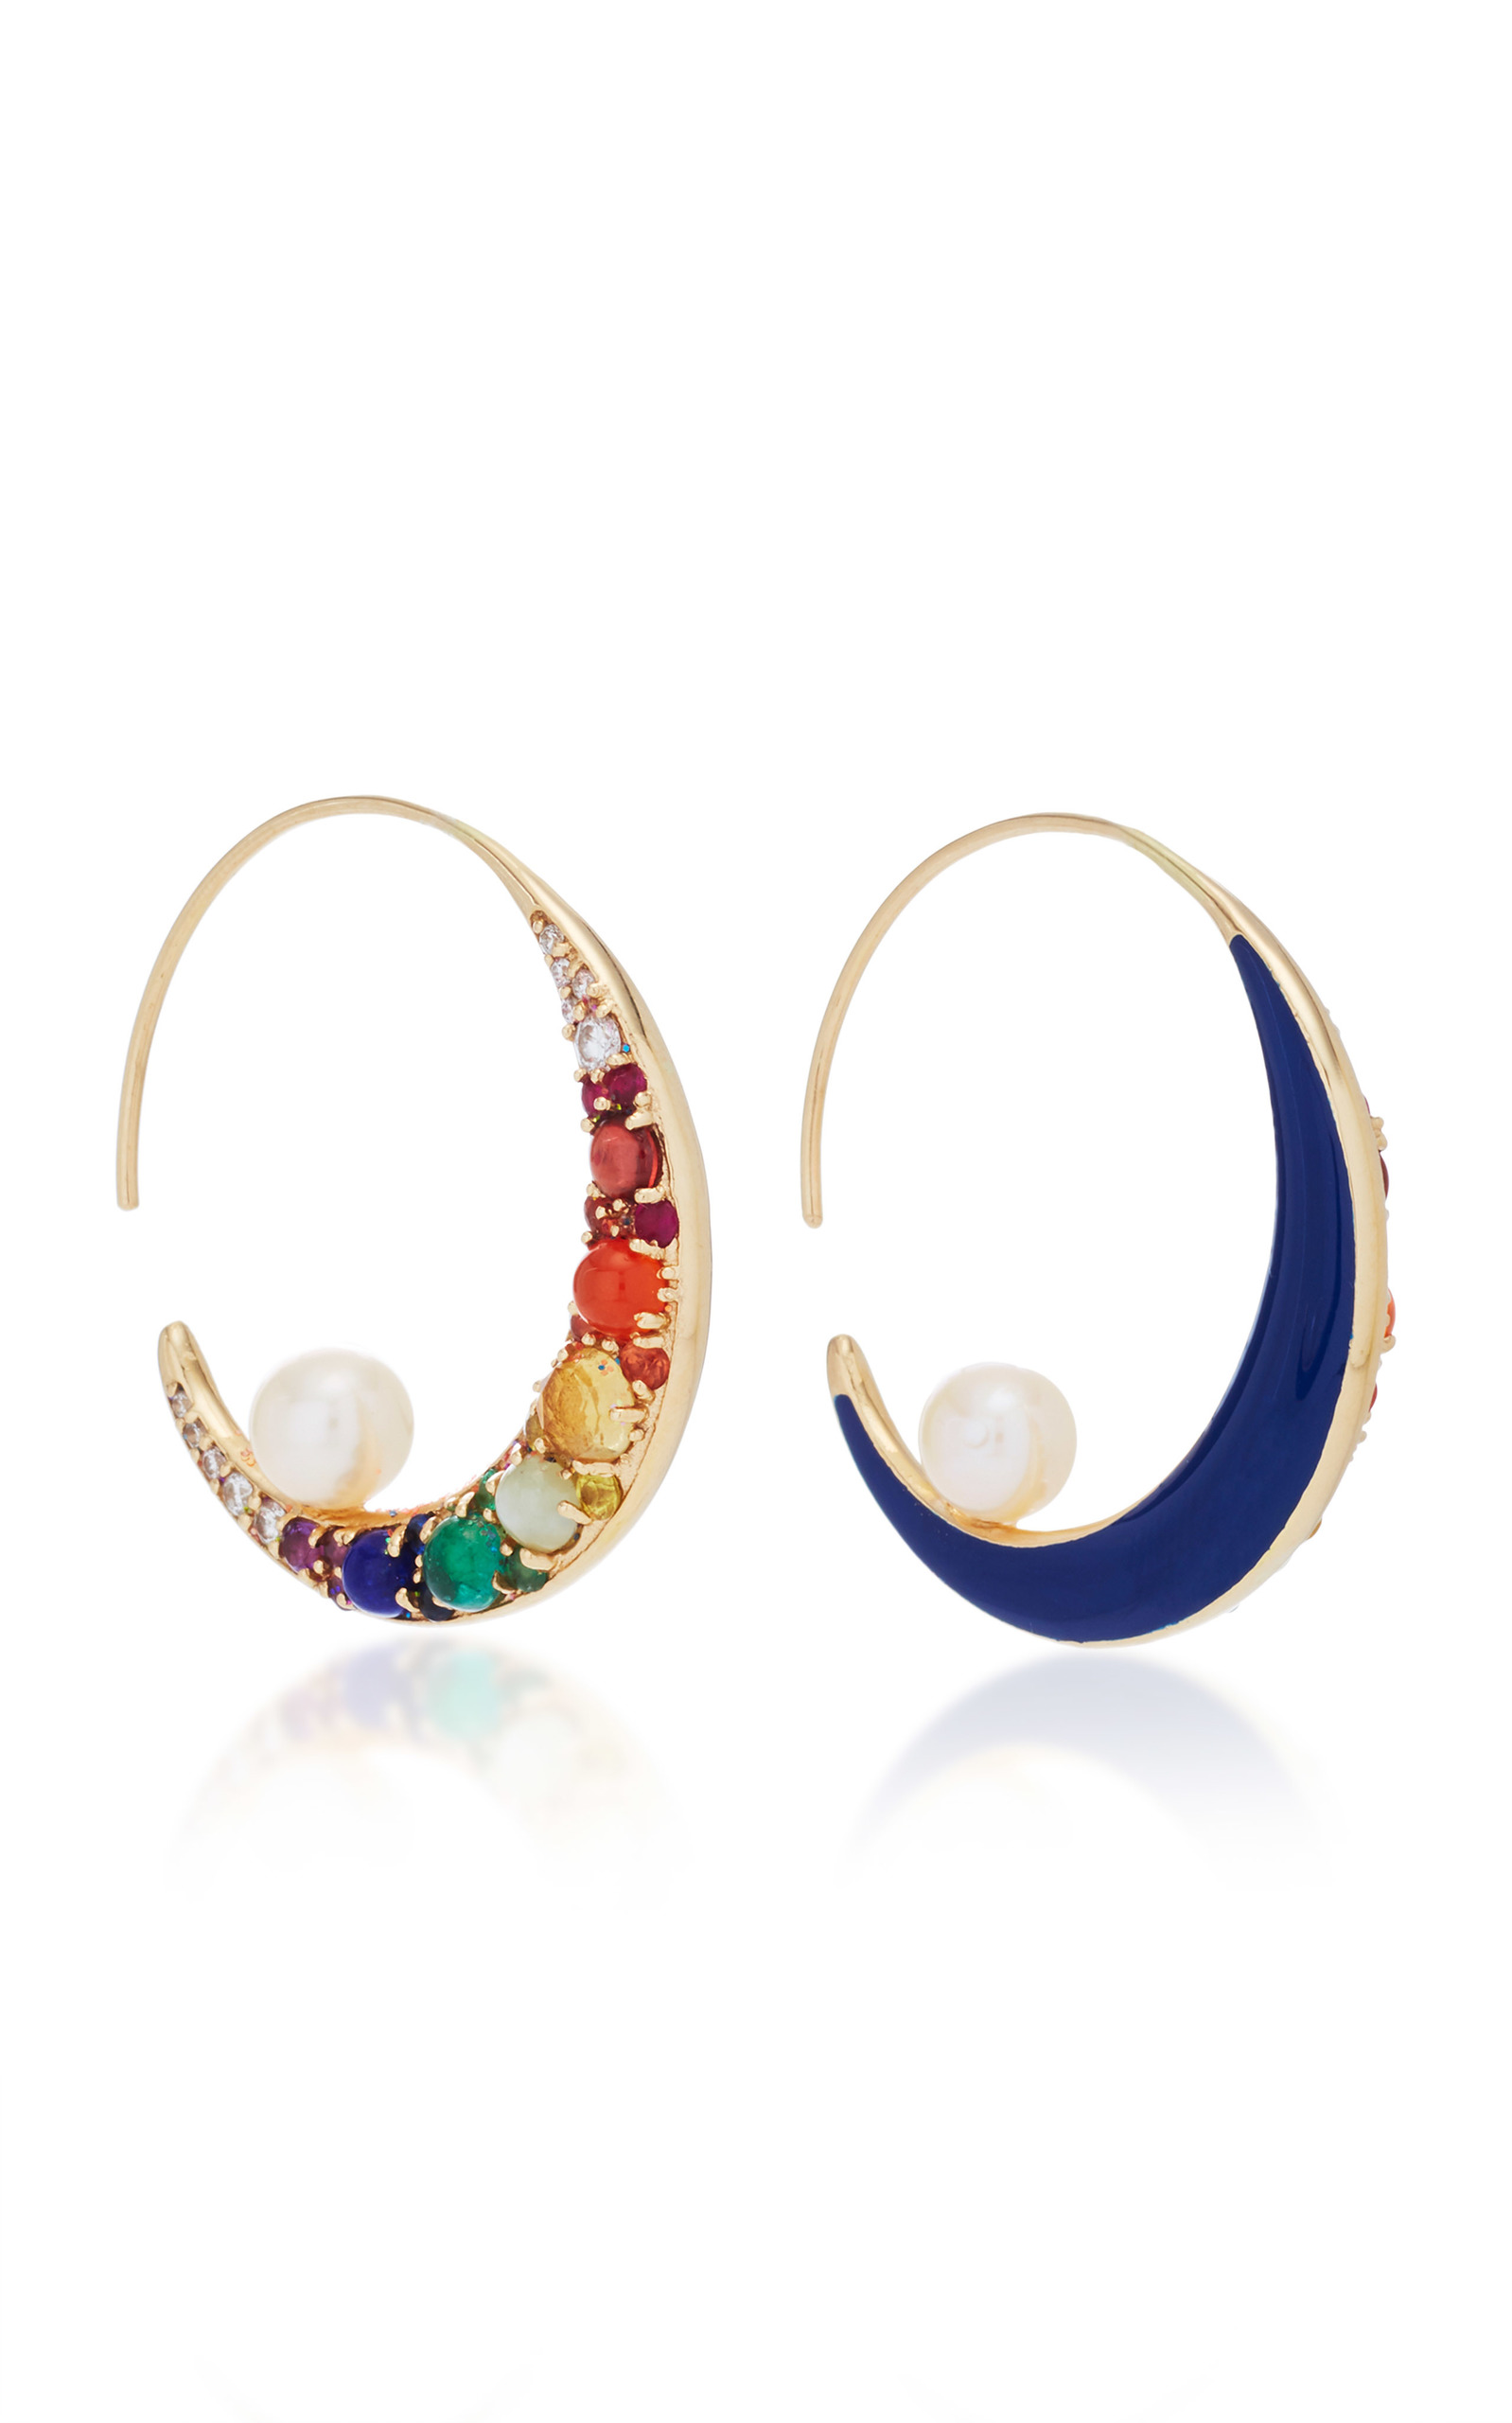 icing us and moon star cartilage earrings earring